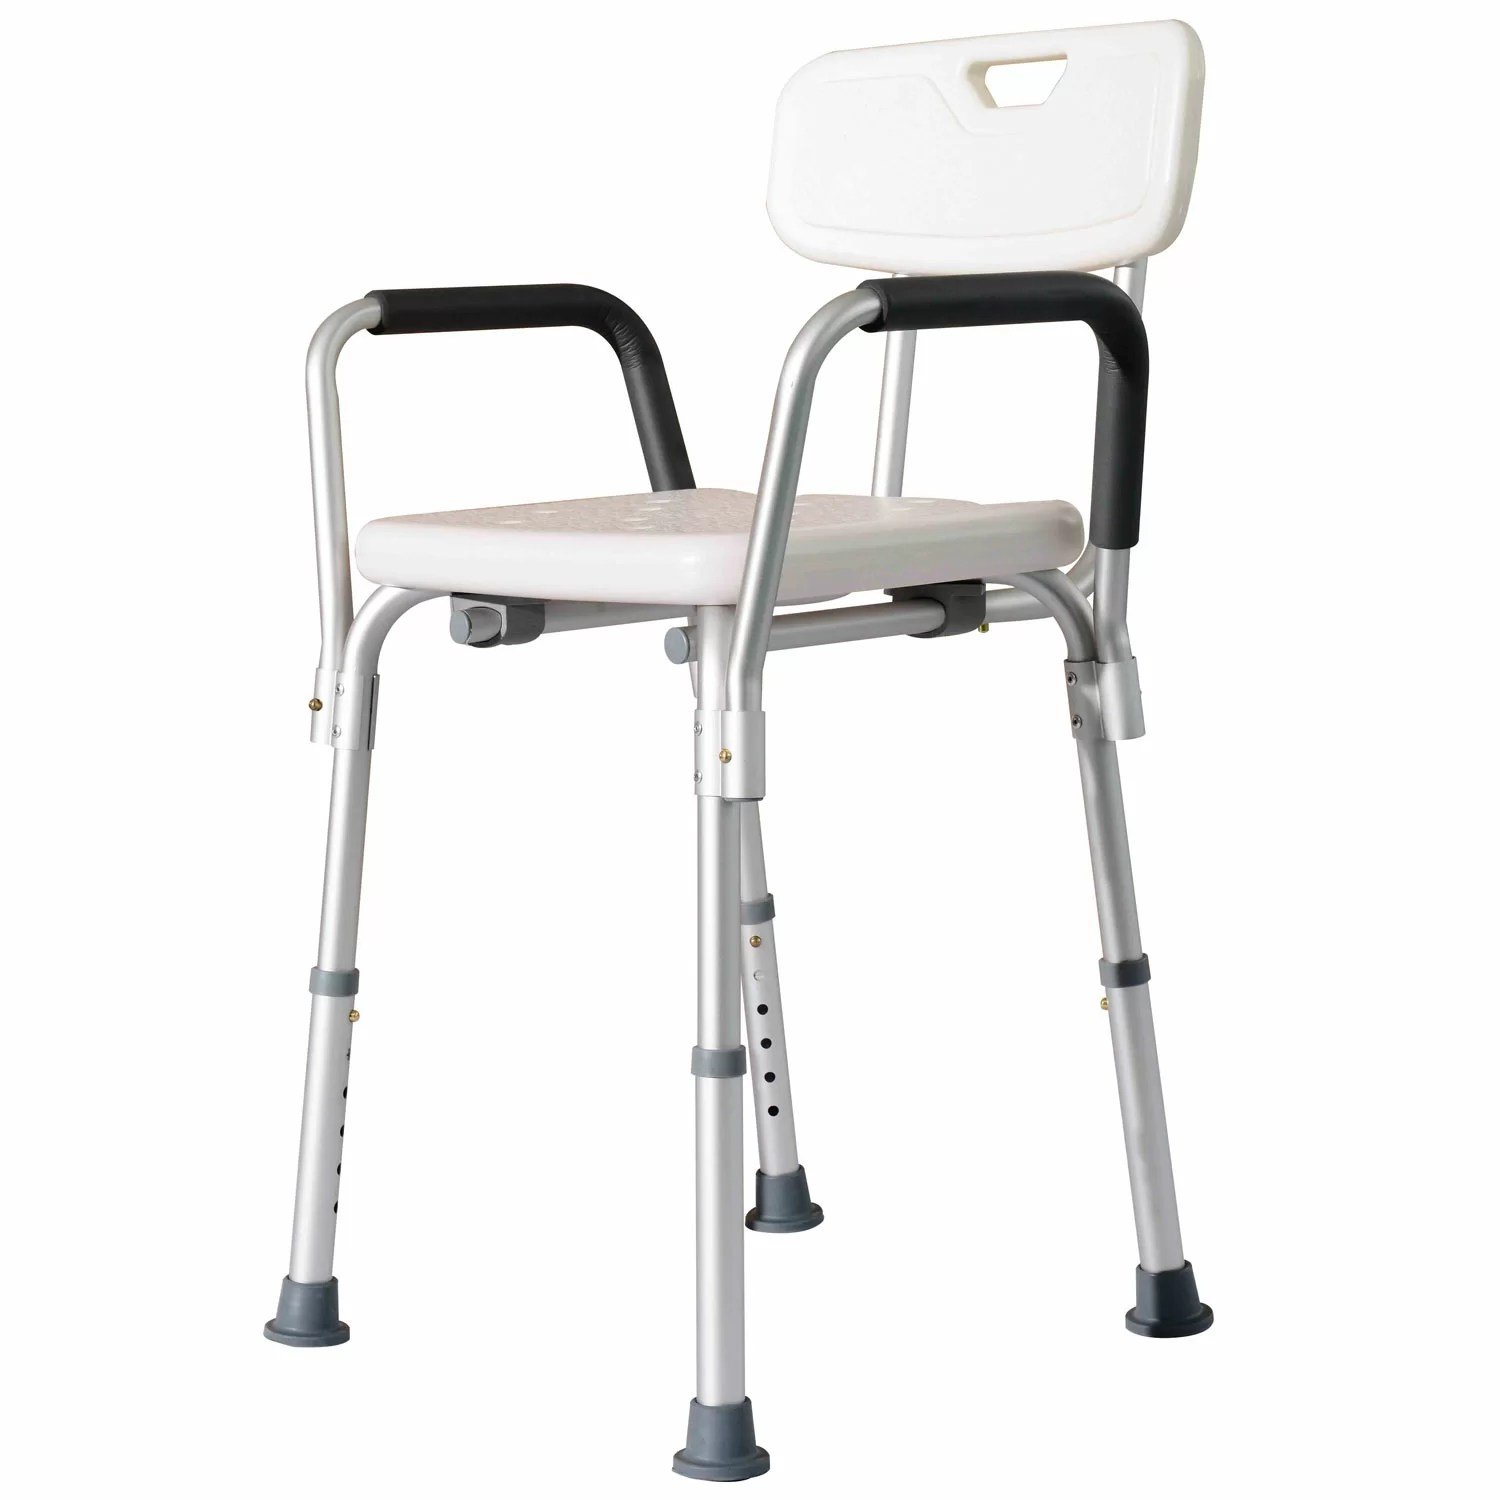 Medical Bath Chair Homcom Adjustable Medical Shower Seat And Reviews Wayfair